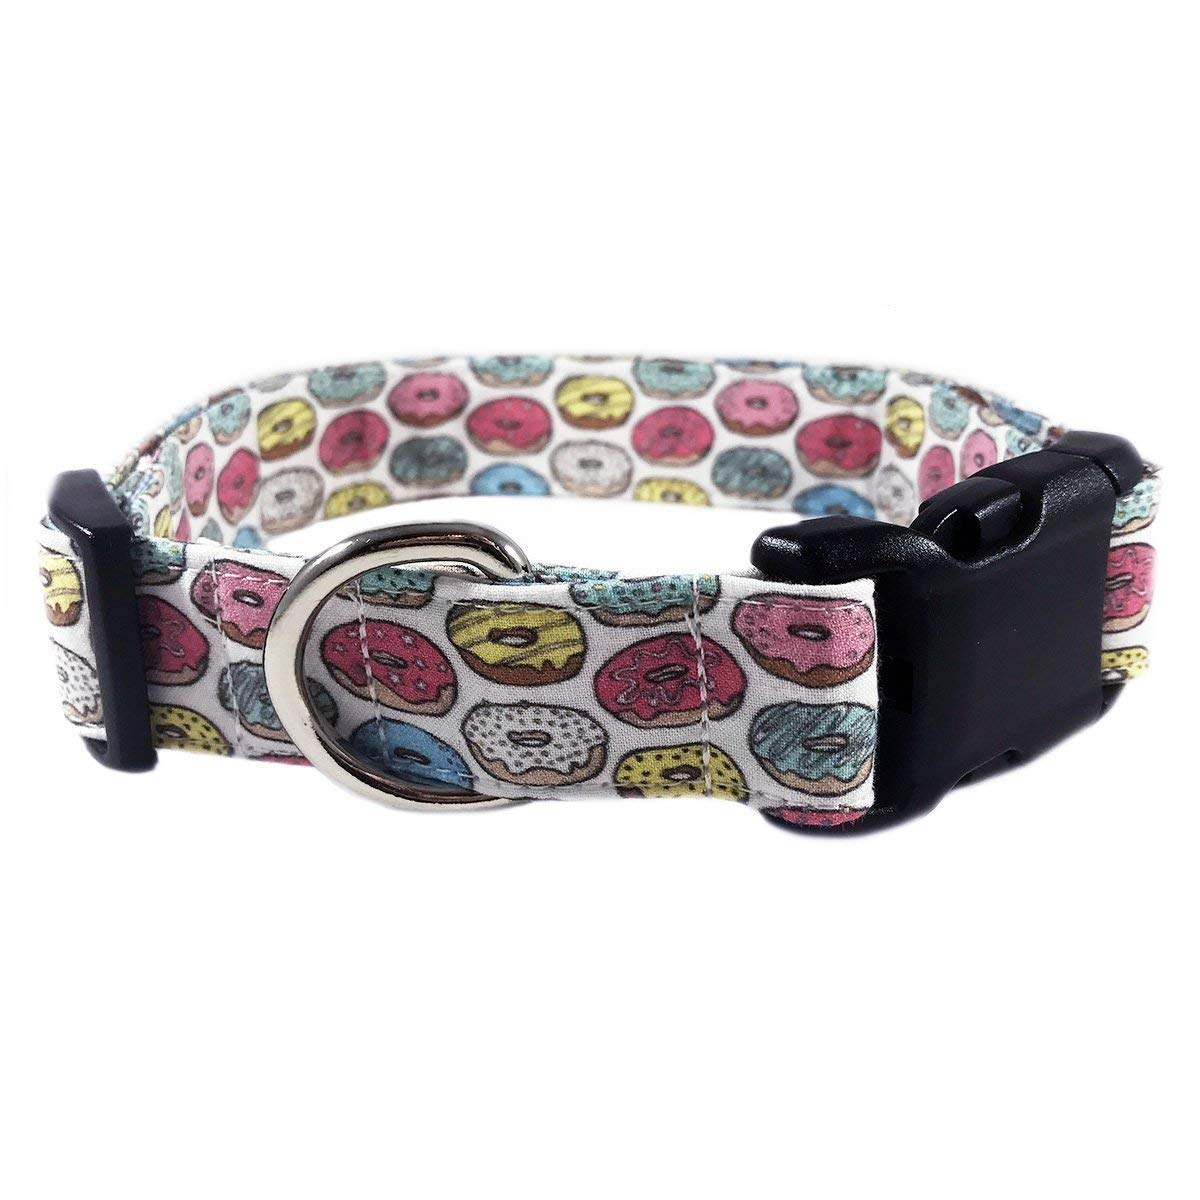 Pink Donut Dog or Cat Collar for Pets Size Medium 3/4'' Wide and 13-17'' Long by Oh My Paw'd